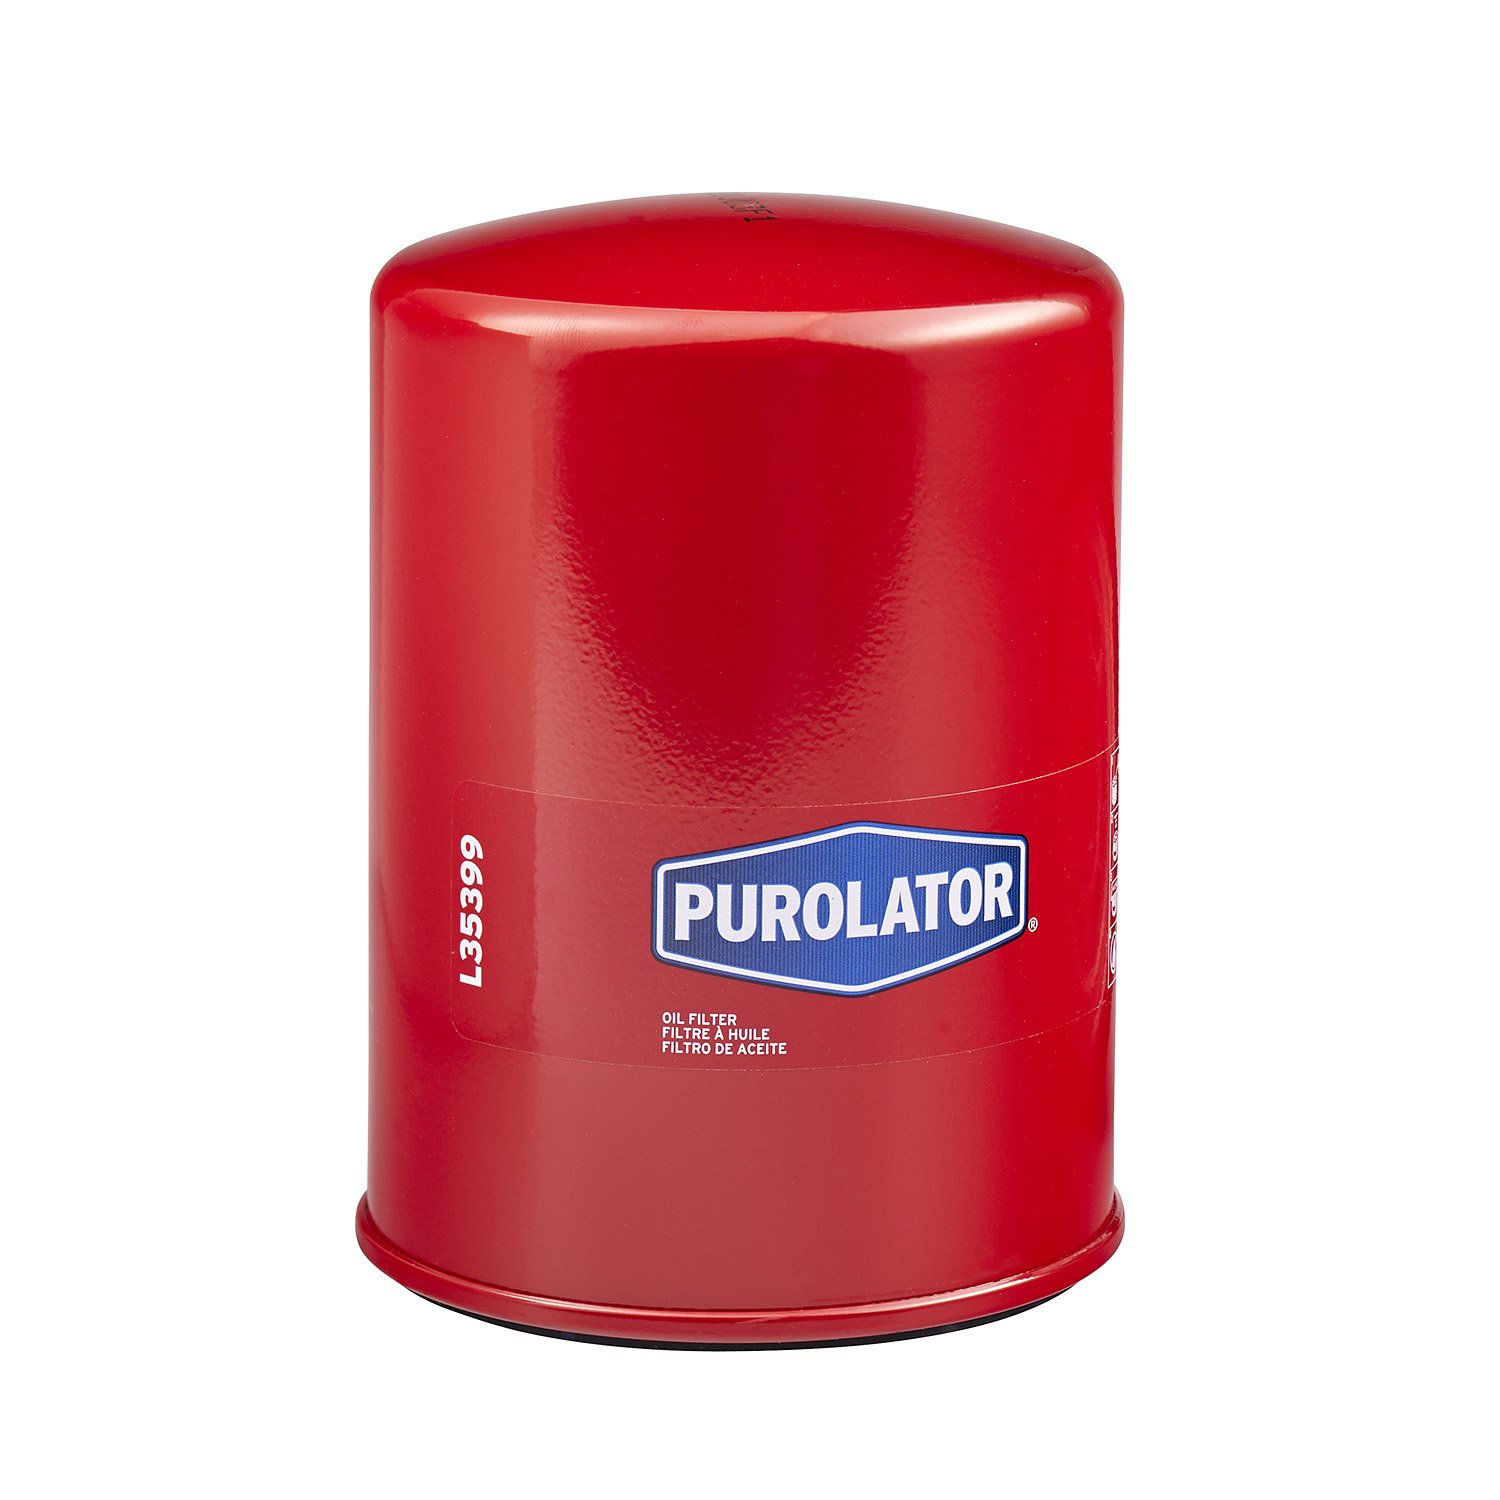 Amazon.com: Purolator L35399 Purolator Oil Filter, Fits Diesel  Applications: Automotive